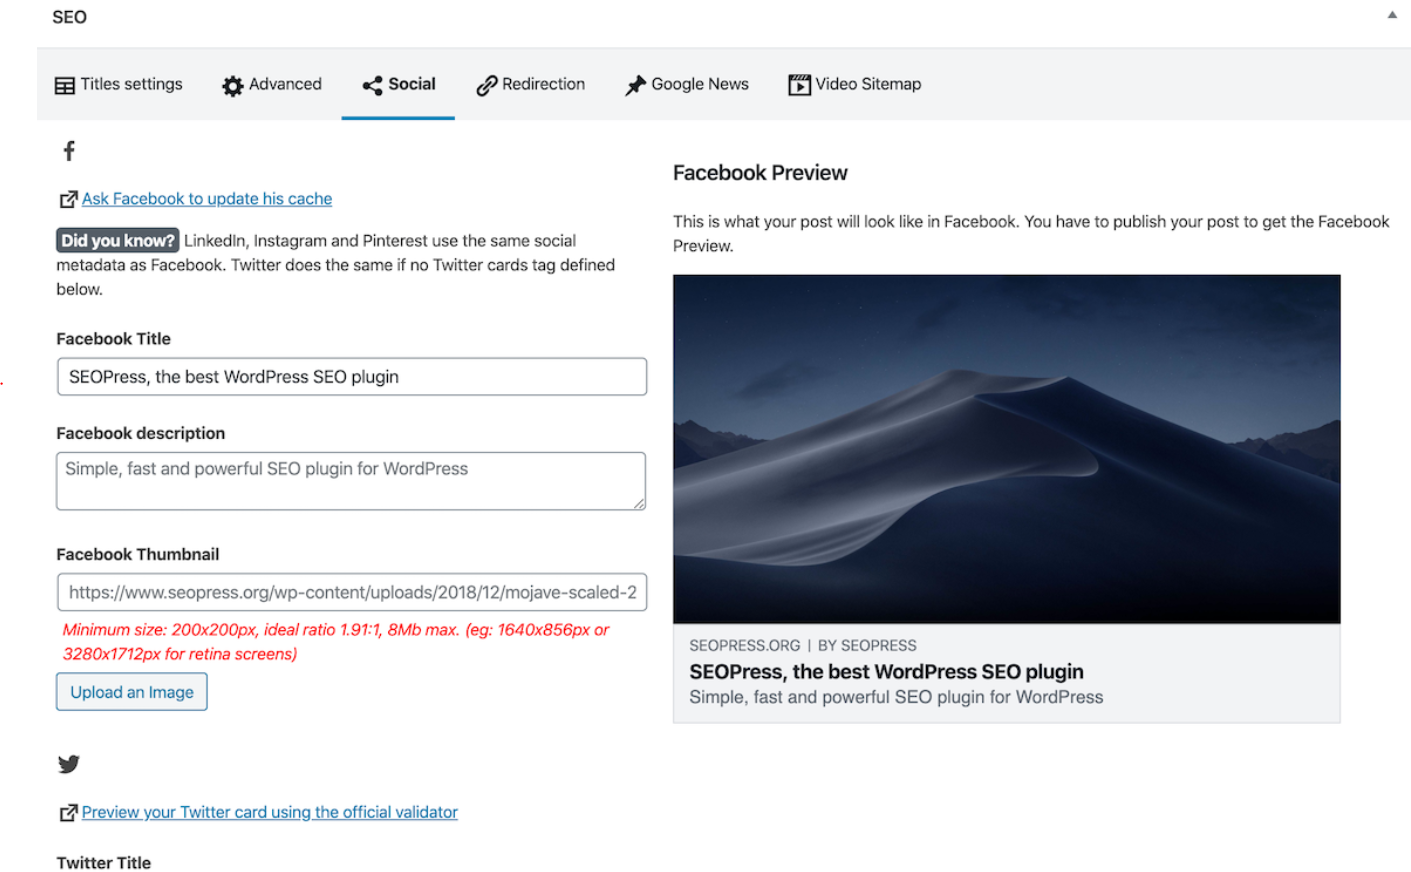 SEO Press provides Open Graph and Twitter Cards to enhance social media sharing on Facebook, Twitter, Instagram and other social channels, making it one of the best SEO plugins for WordPress.